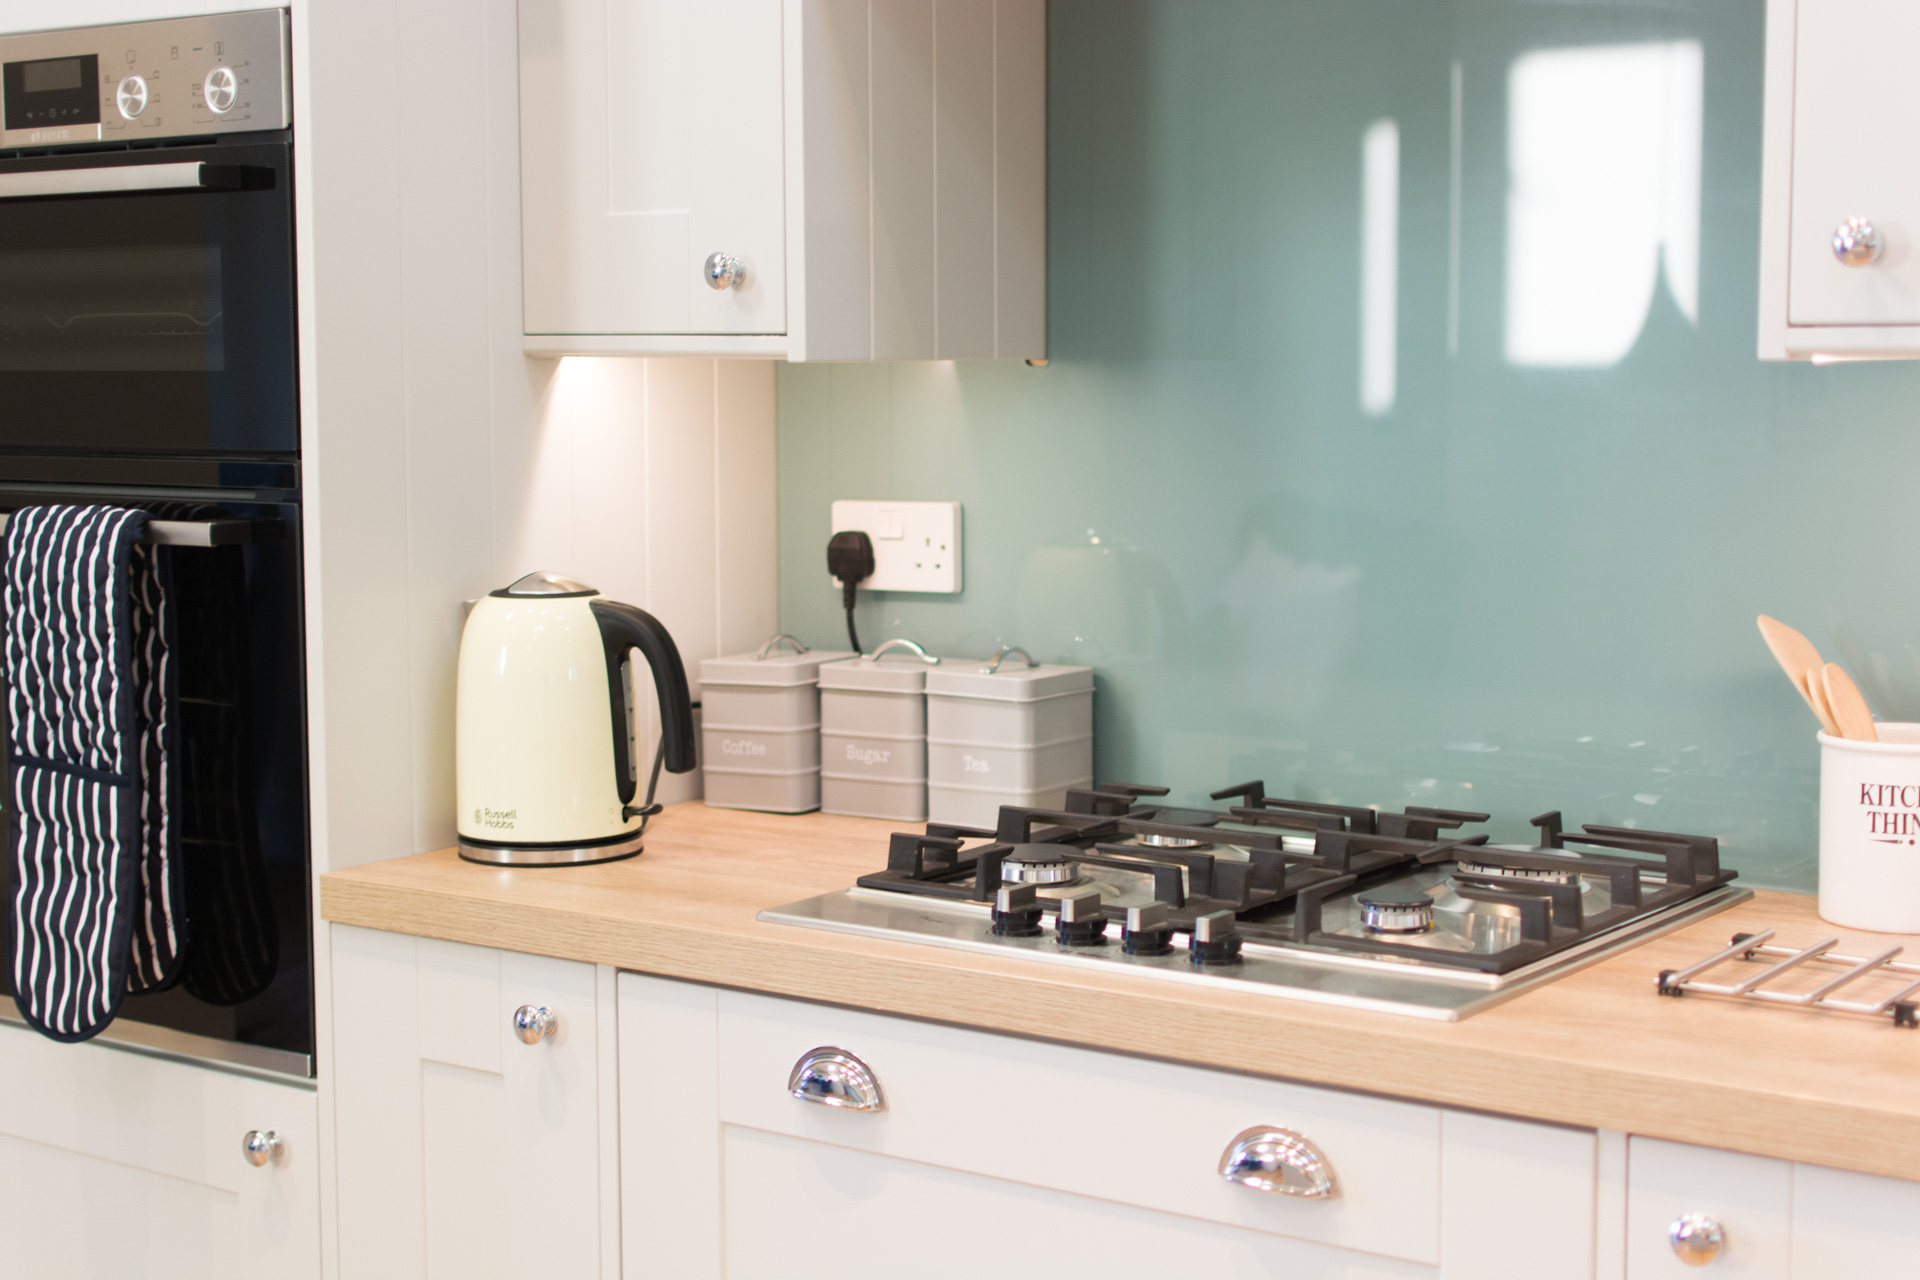 Kettle, toaster and stove top.